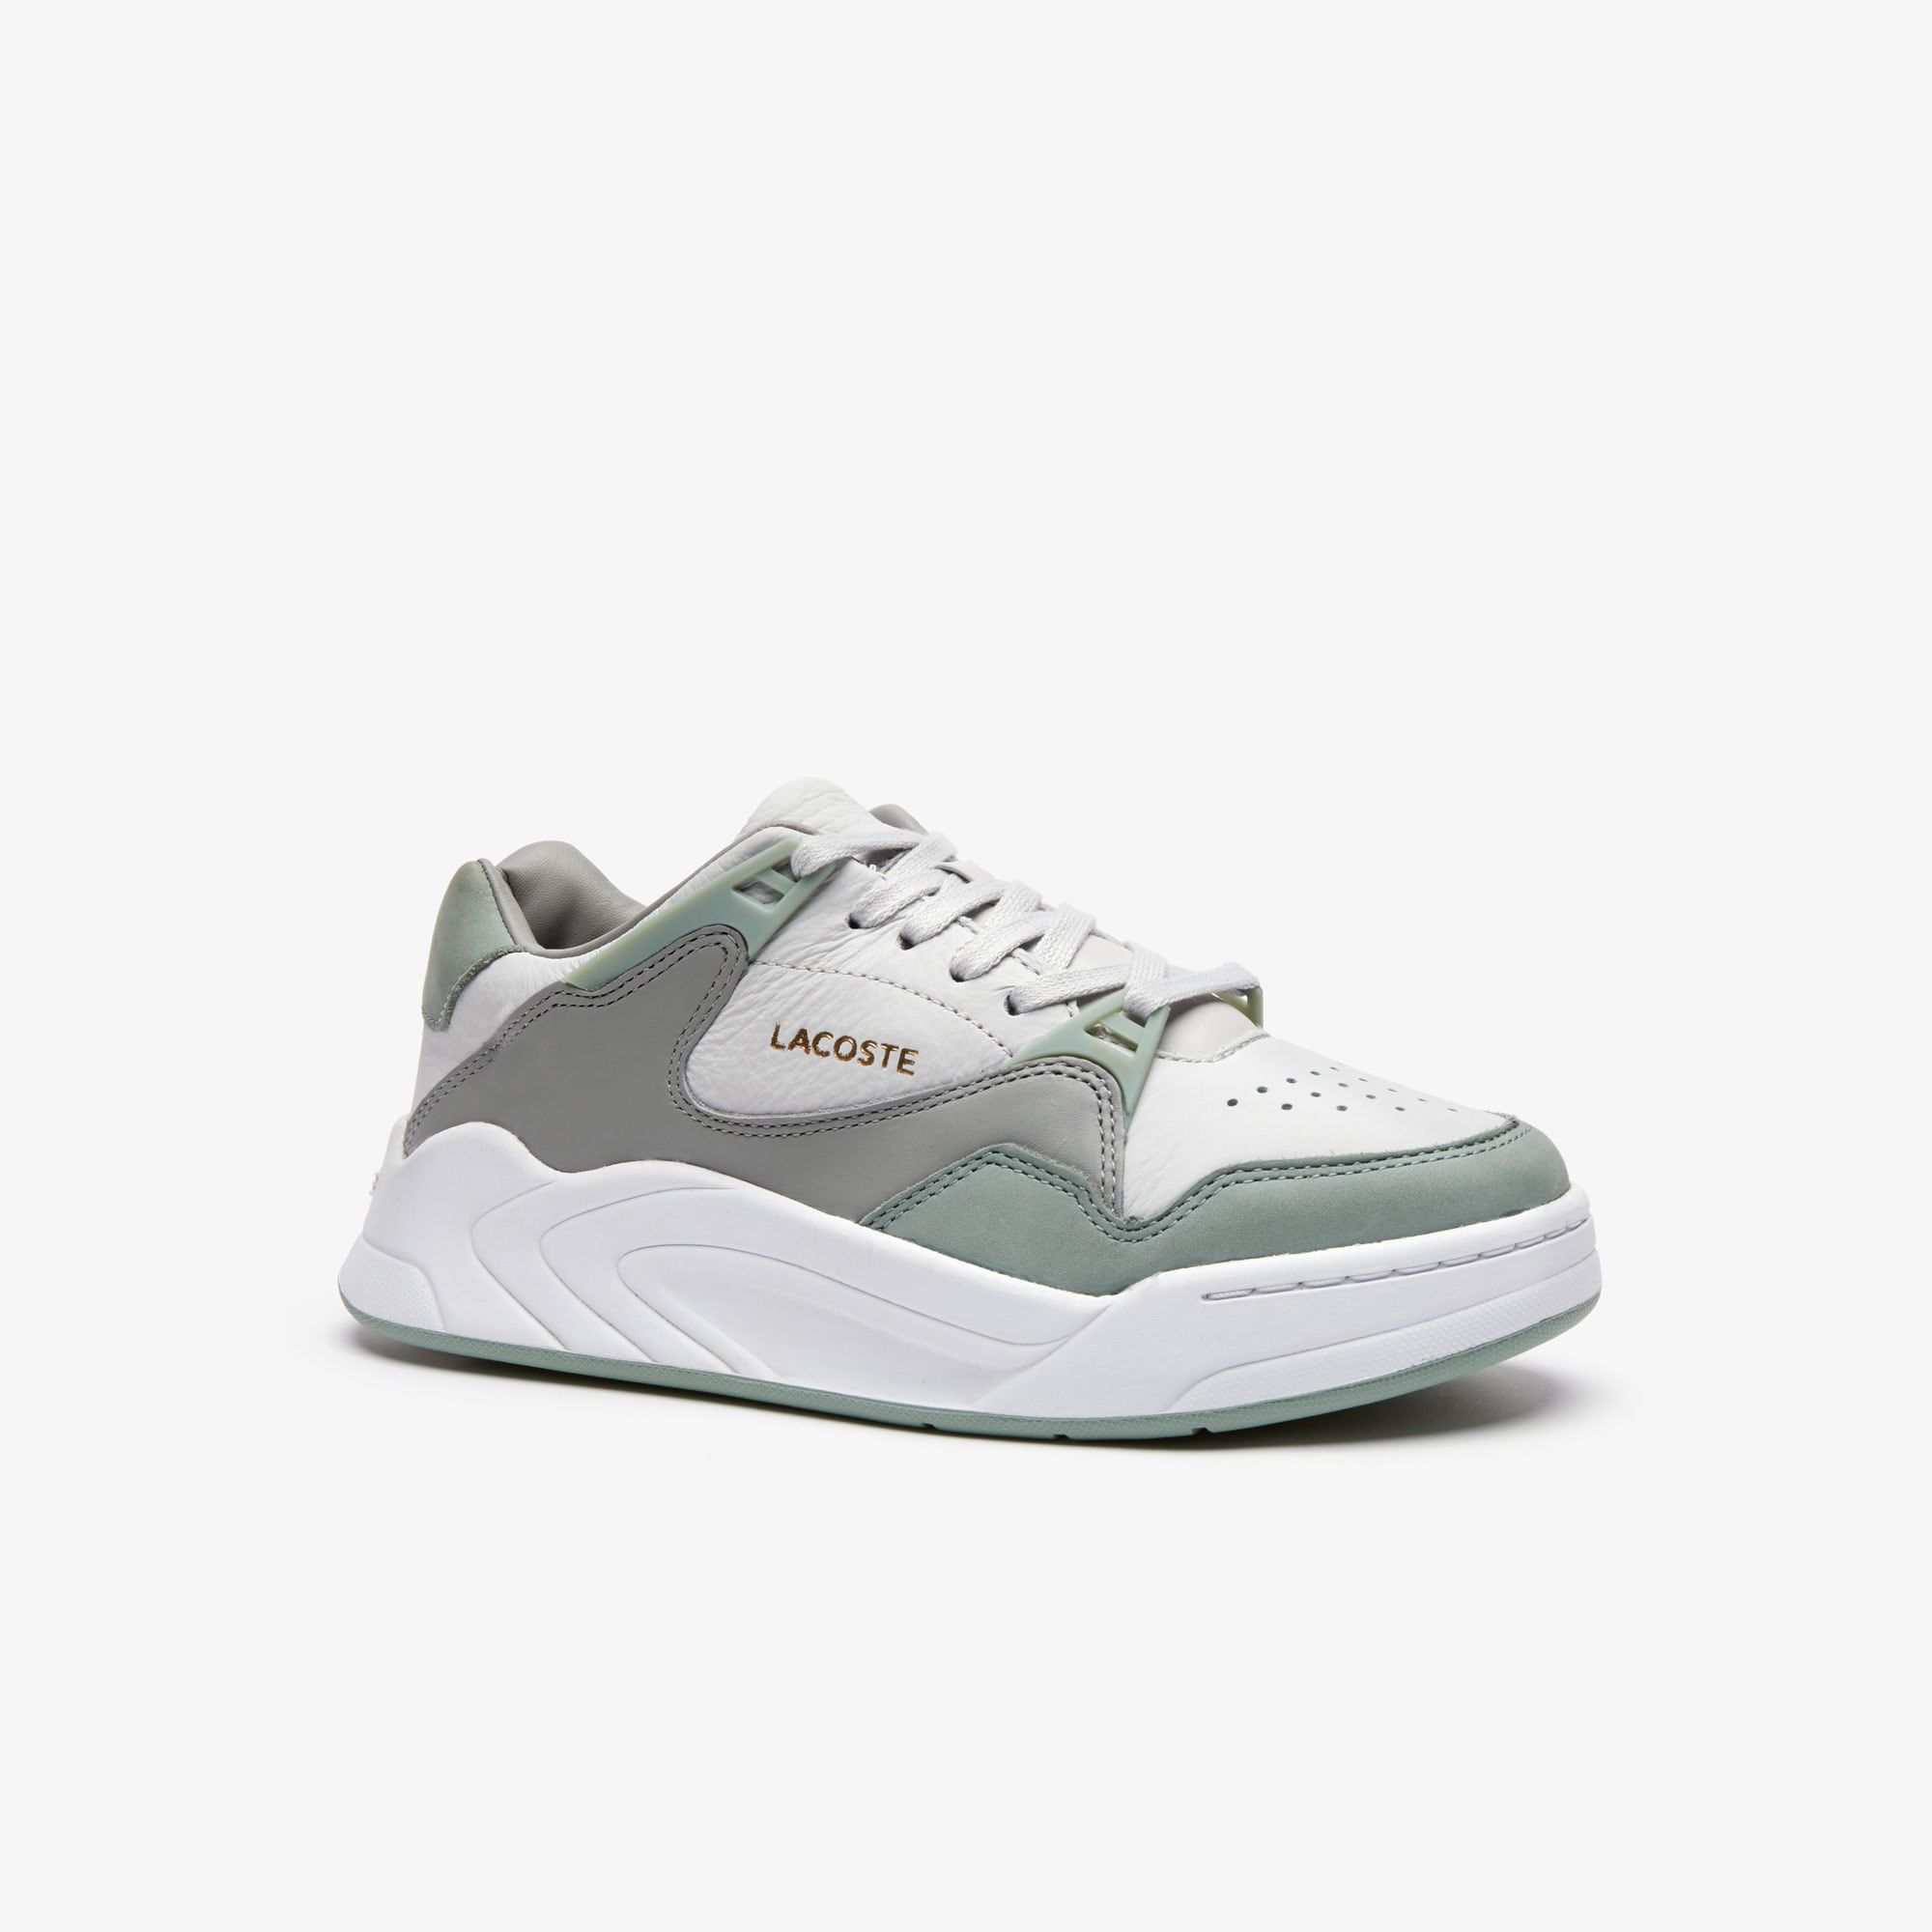 8ae41a156c Lacoste shoes for women: Boots, Trainers, Sneakers | LACOSTE